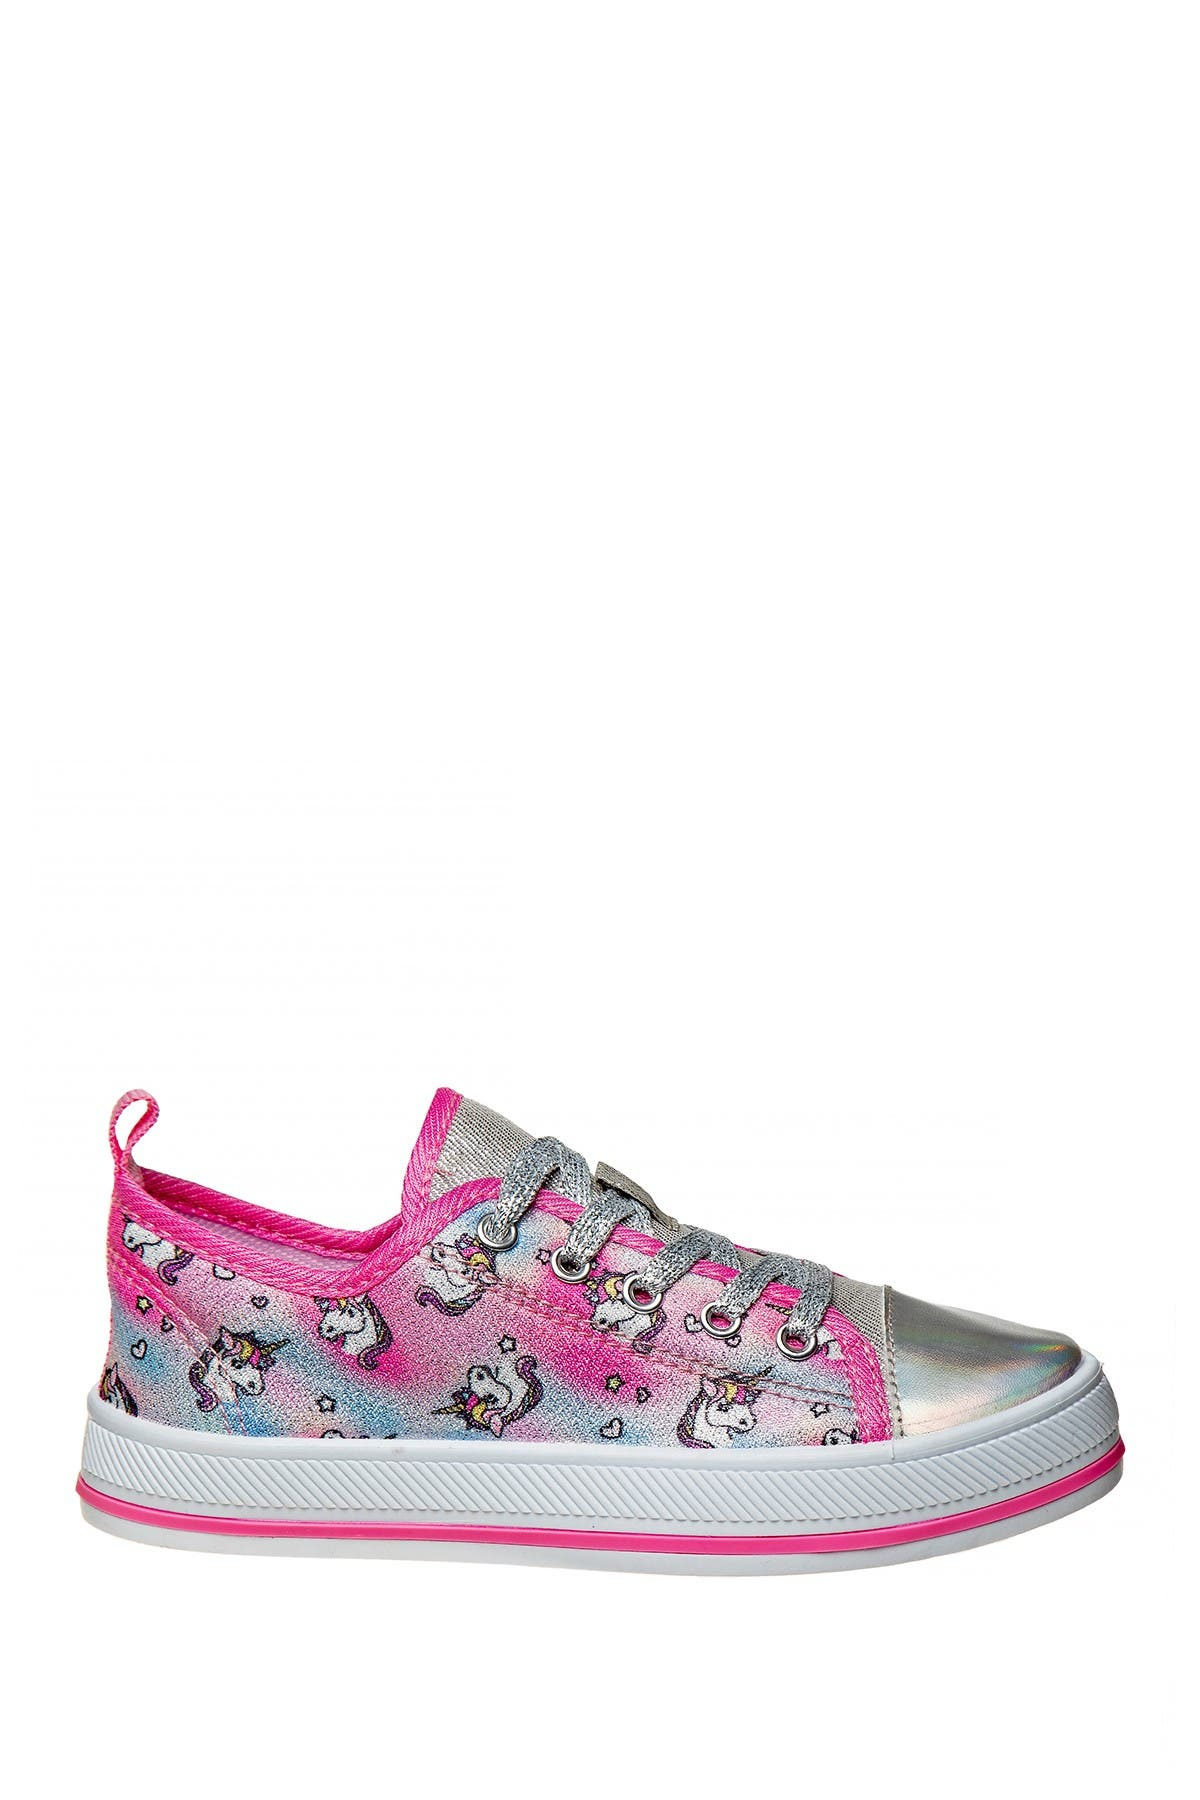 Image of Josmo Metallic Unicorn Print Canvas Sneaker